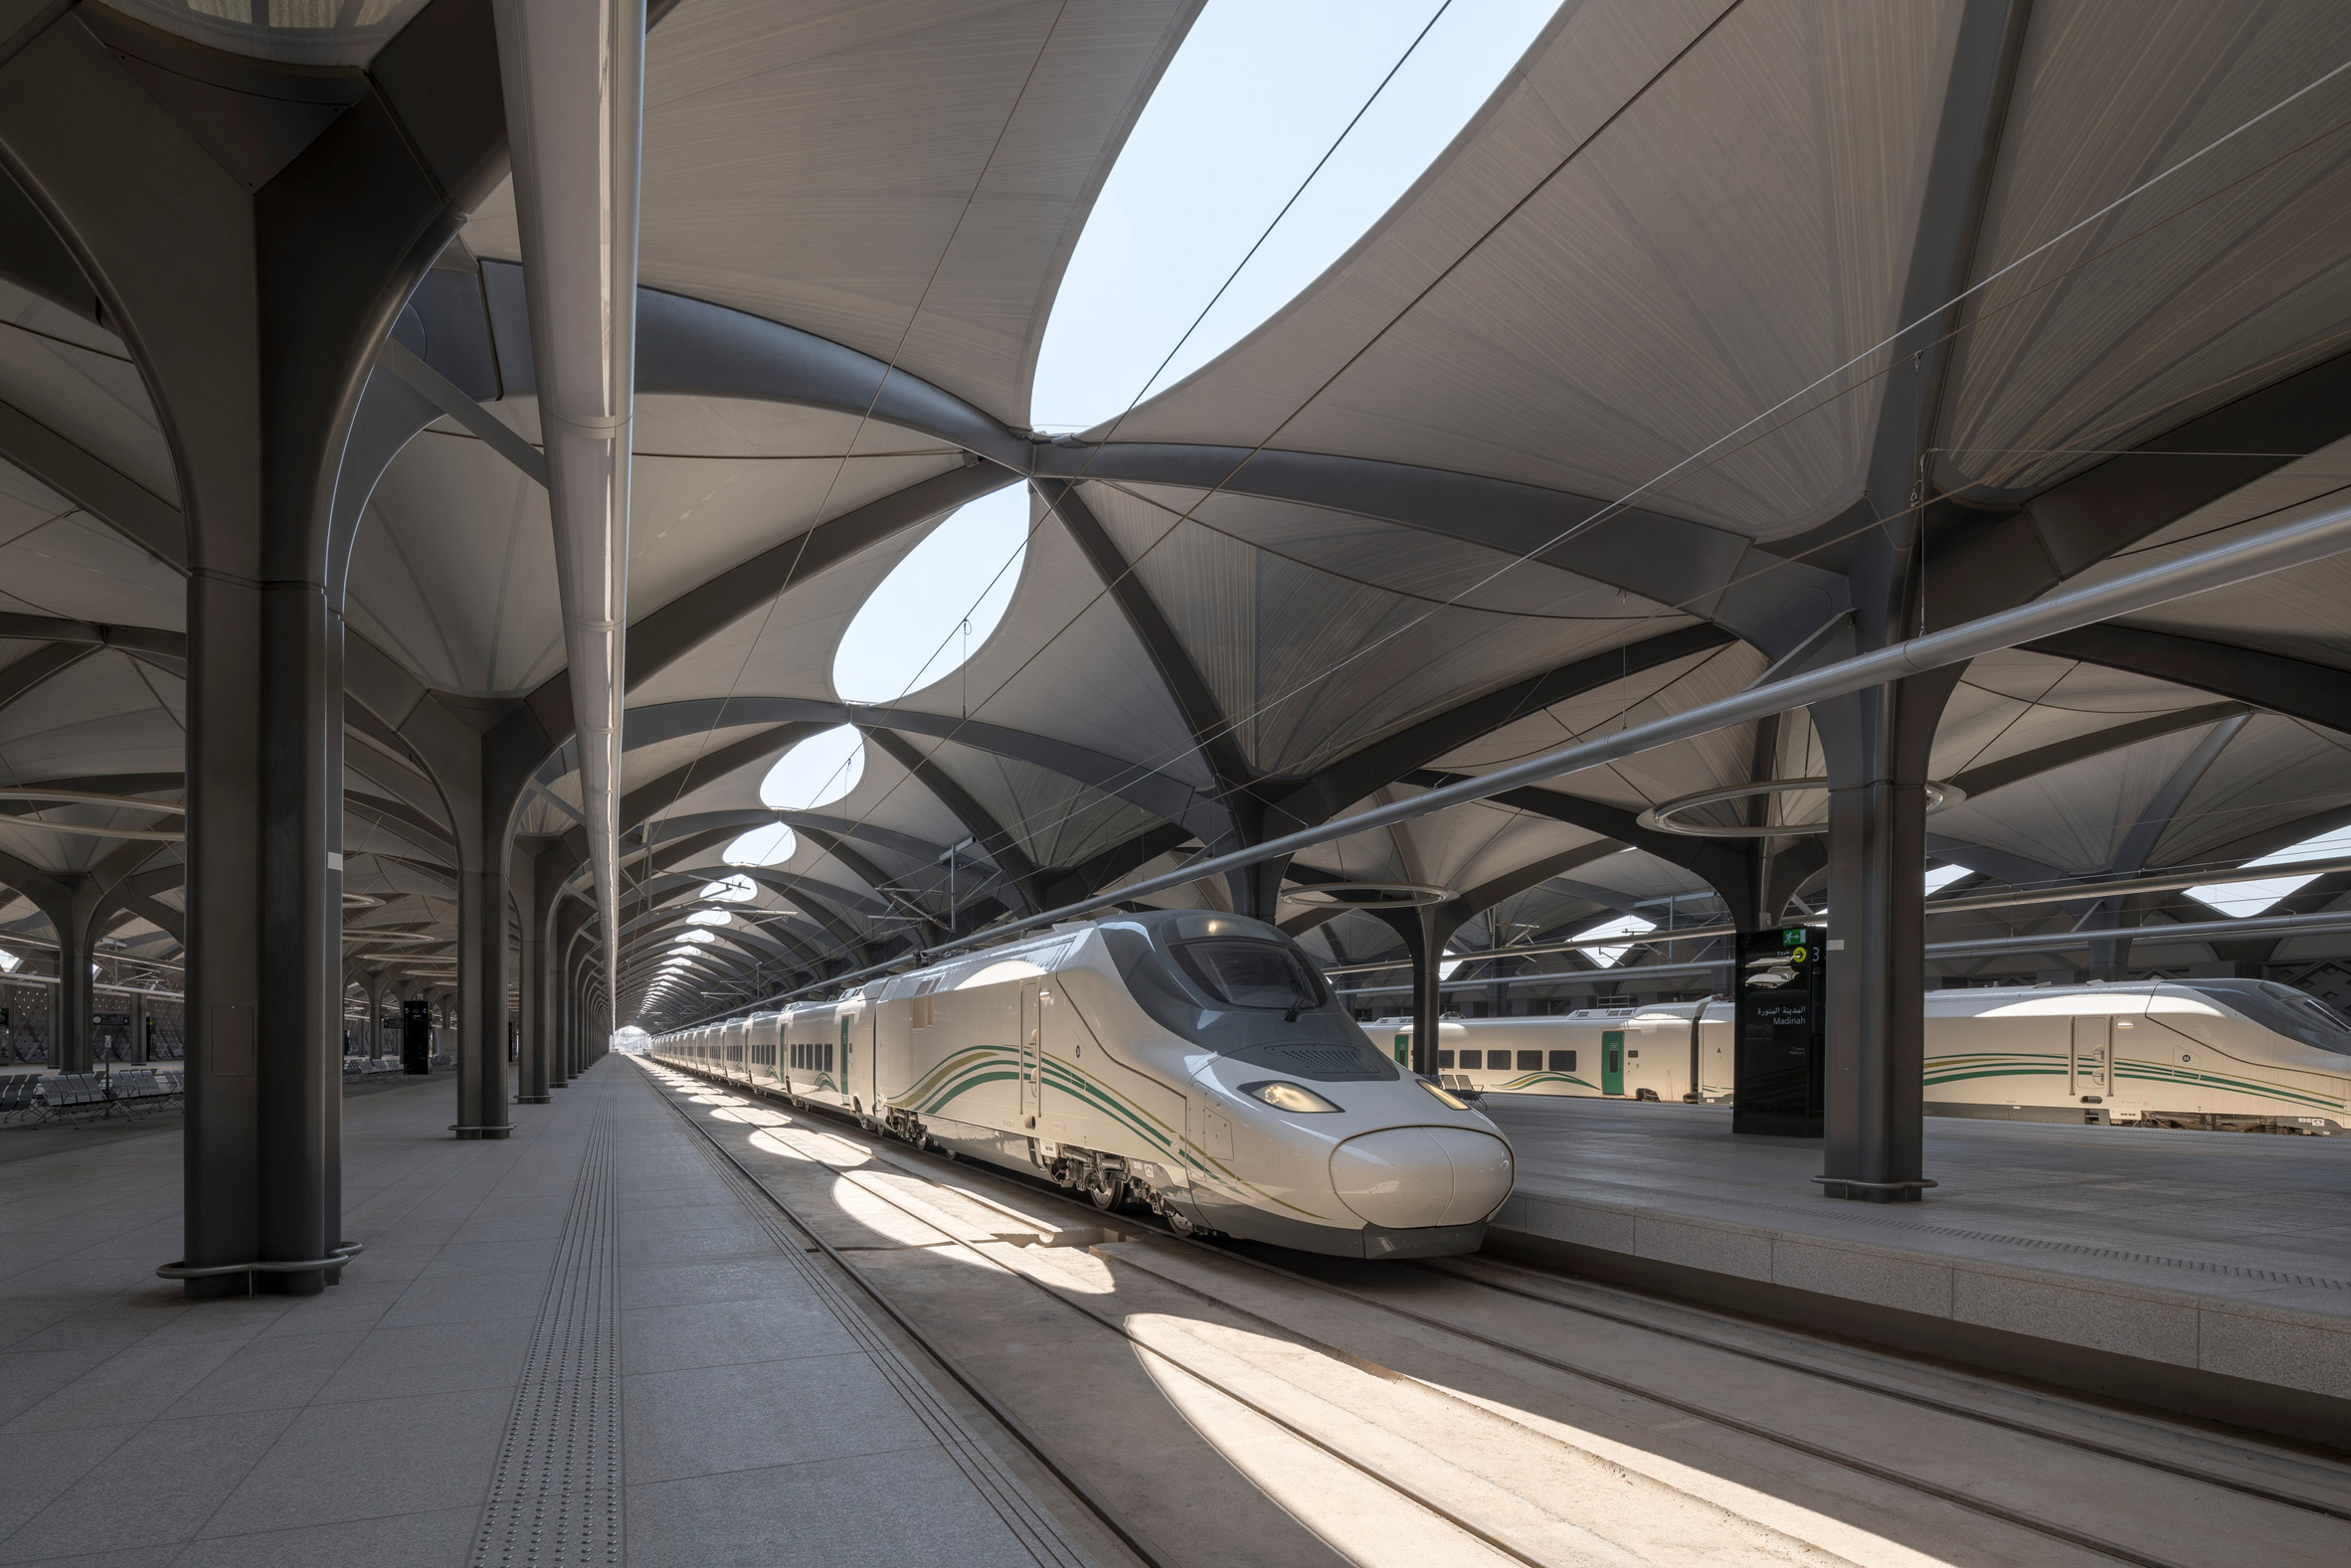 Stations in Mecca, Medina, Jeddah and King Abdullah Economic City on the Haramain high-speed rail line Saudi Arabia by Foster + Partners